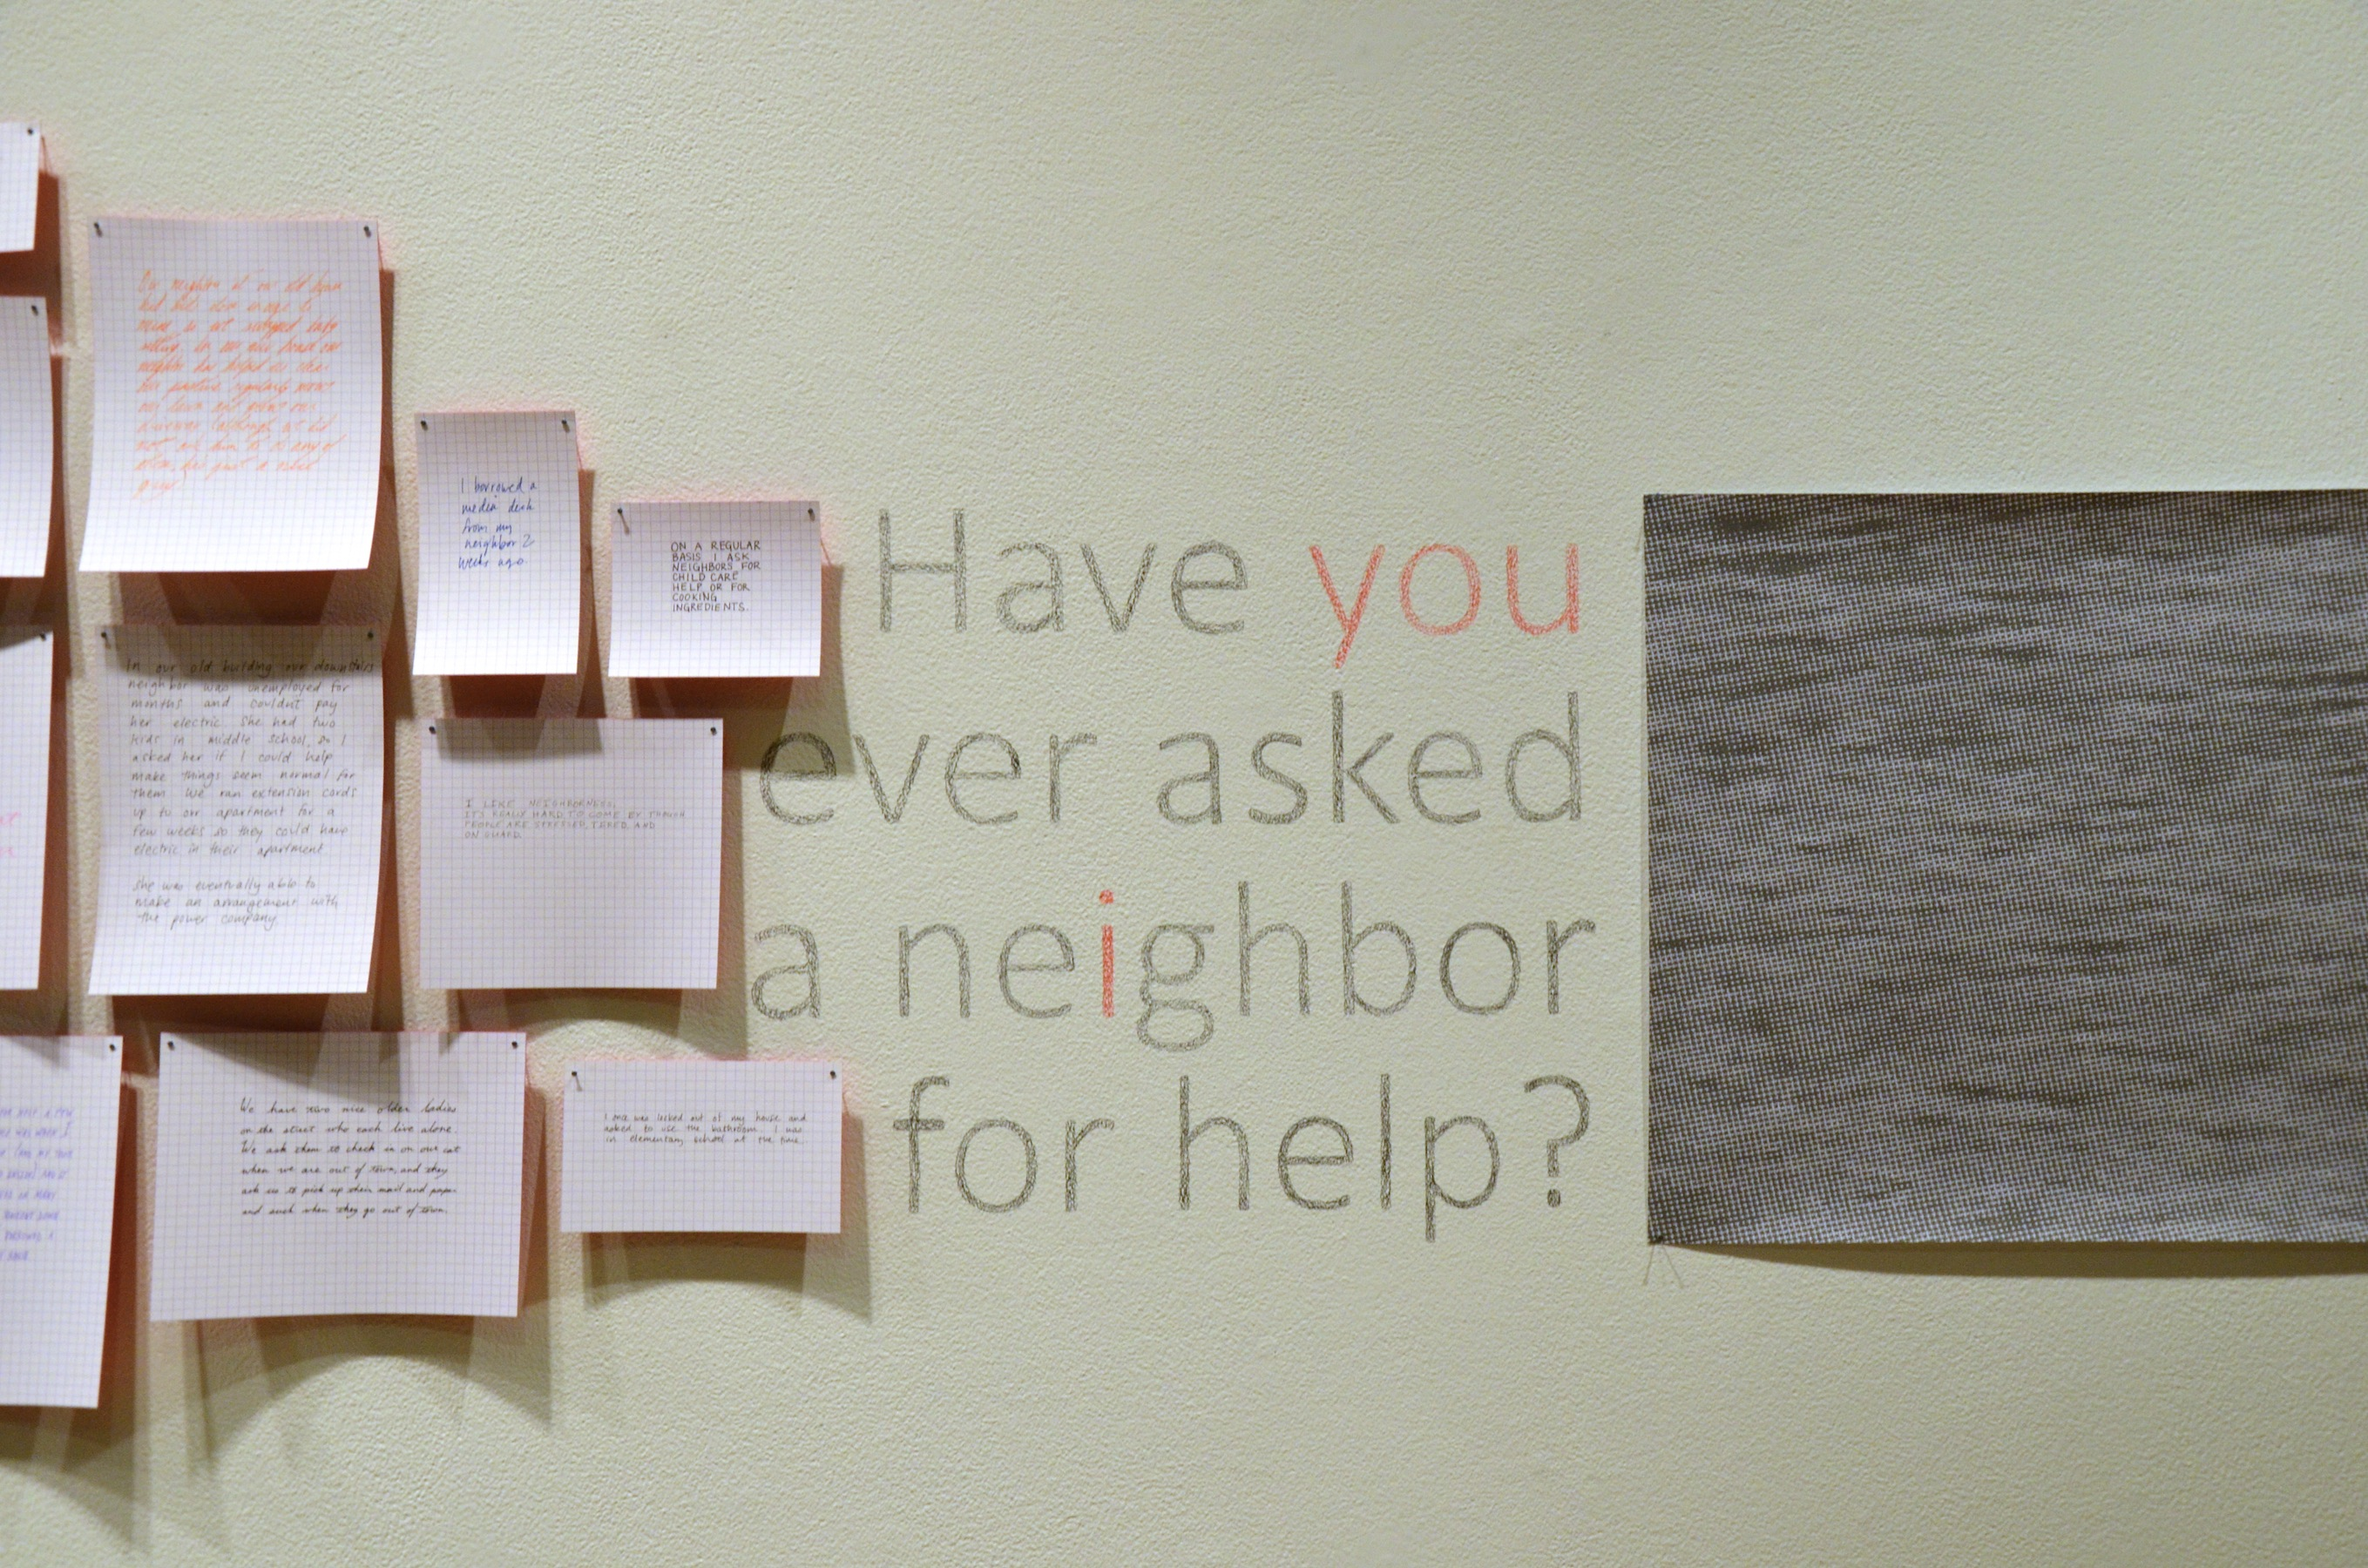 Have you ever asked a neighbor for help?